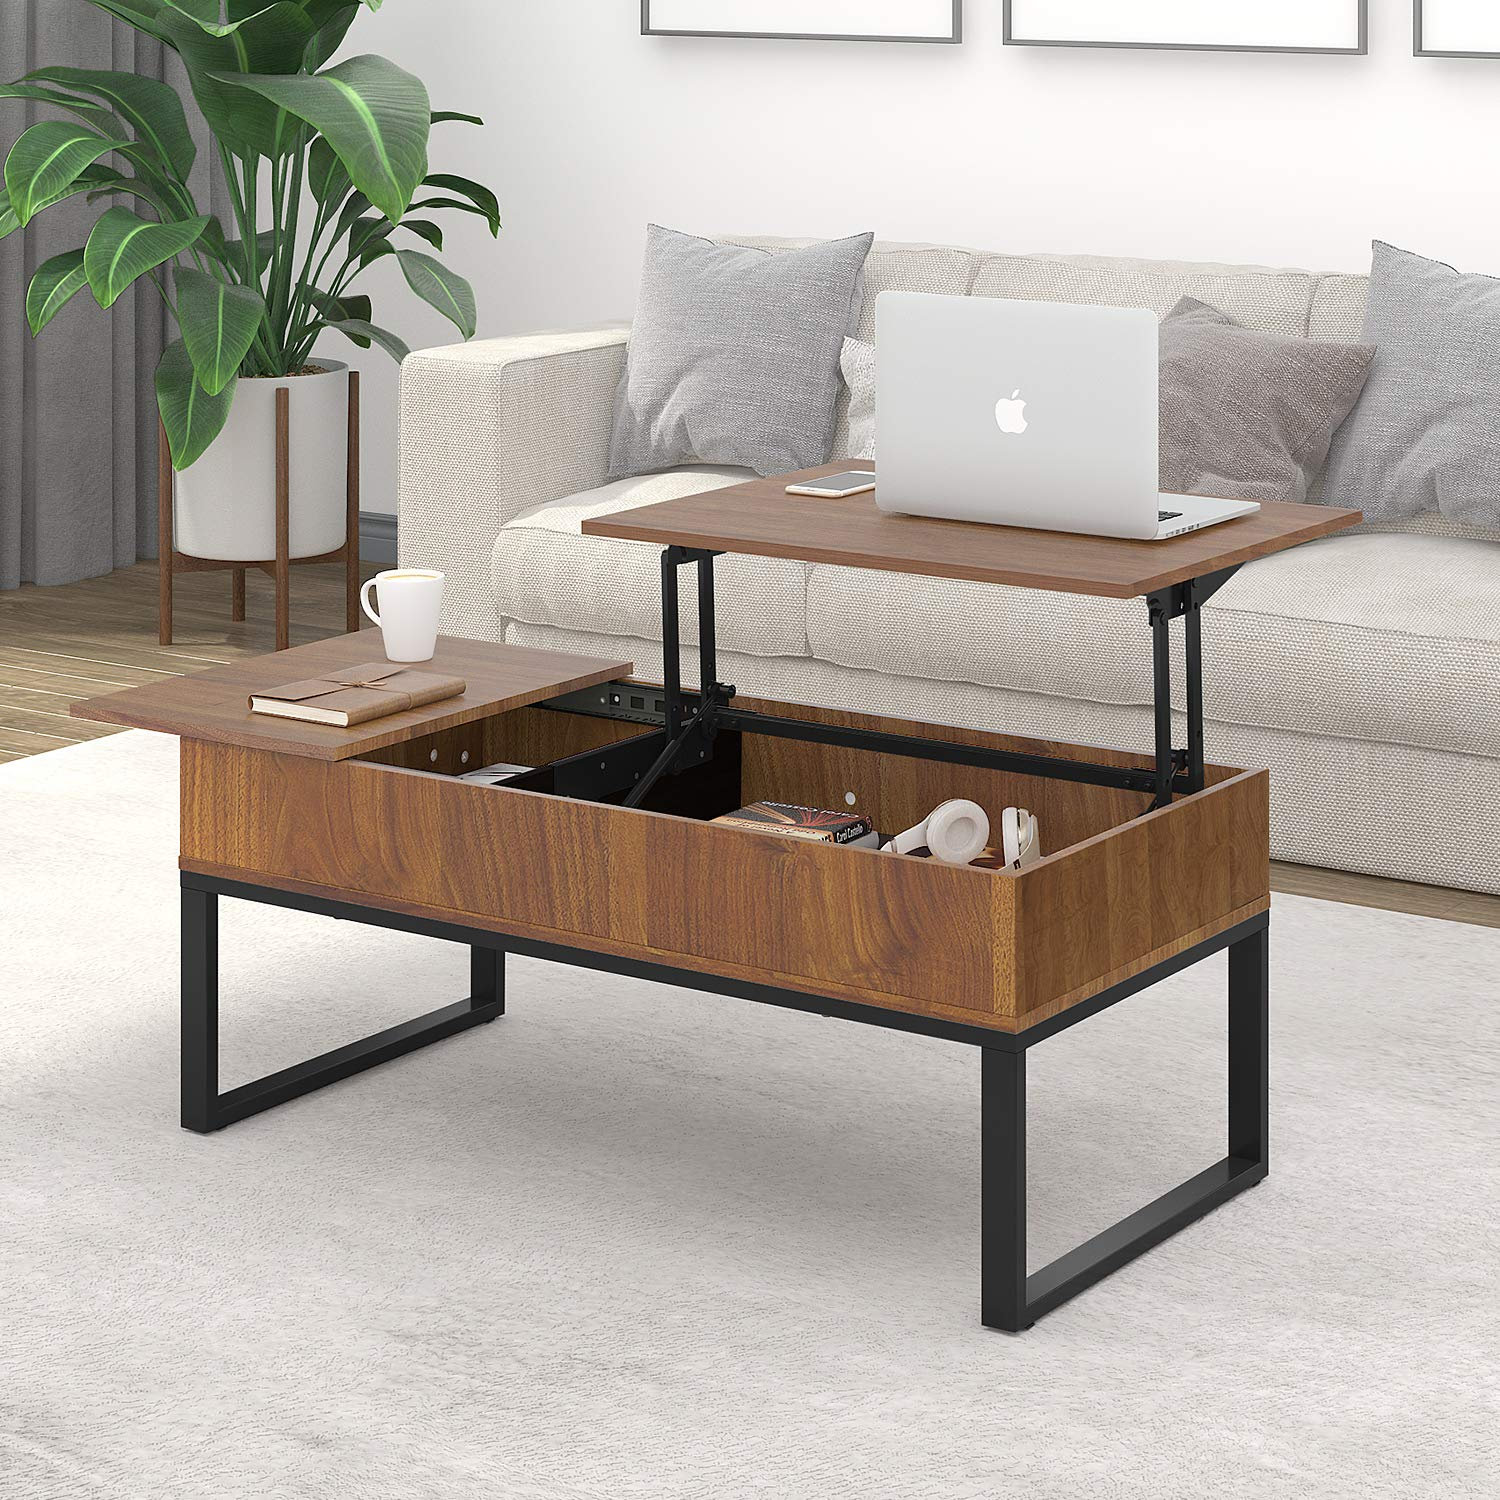 WLIVE Versatile Lift Top Coffee Table